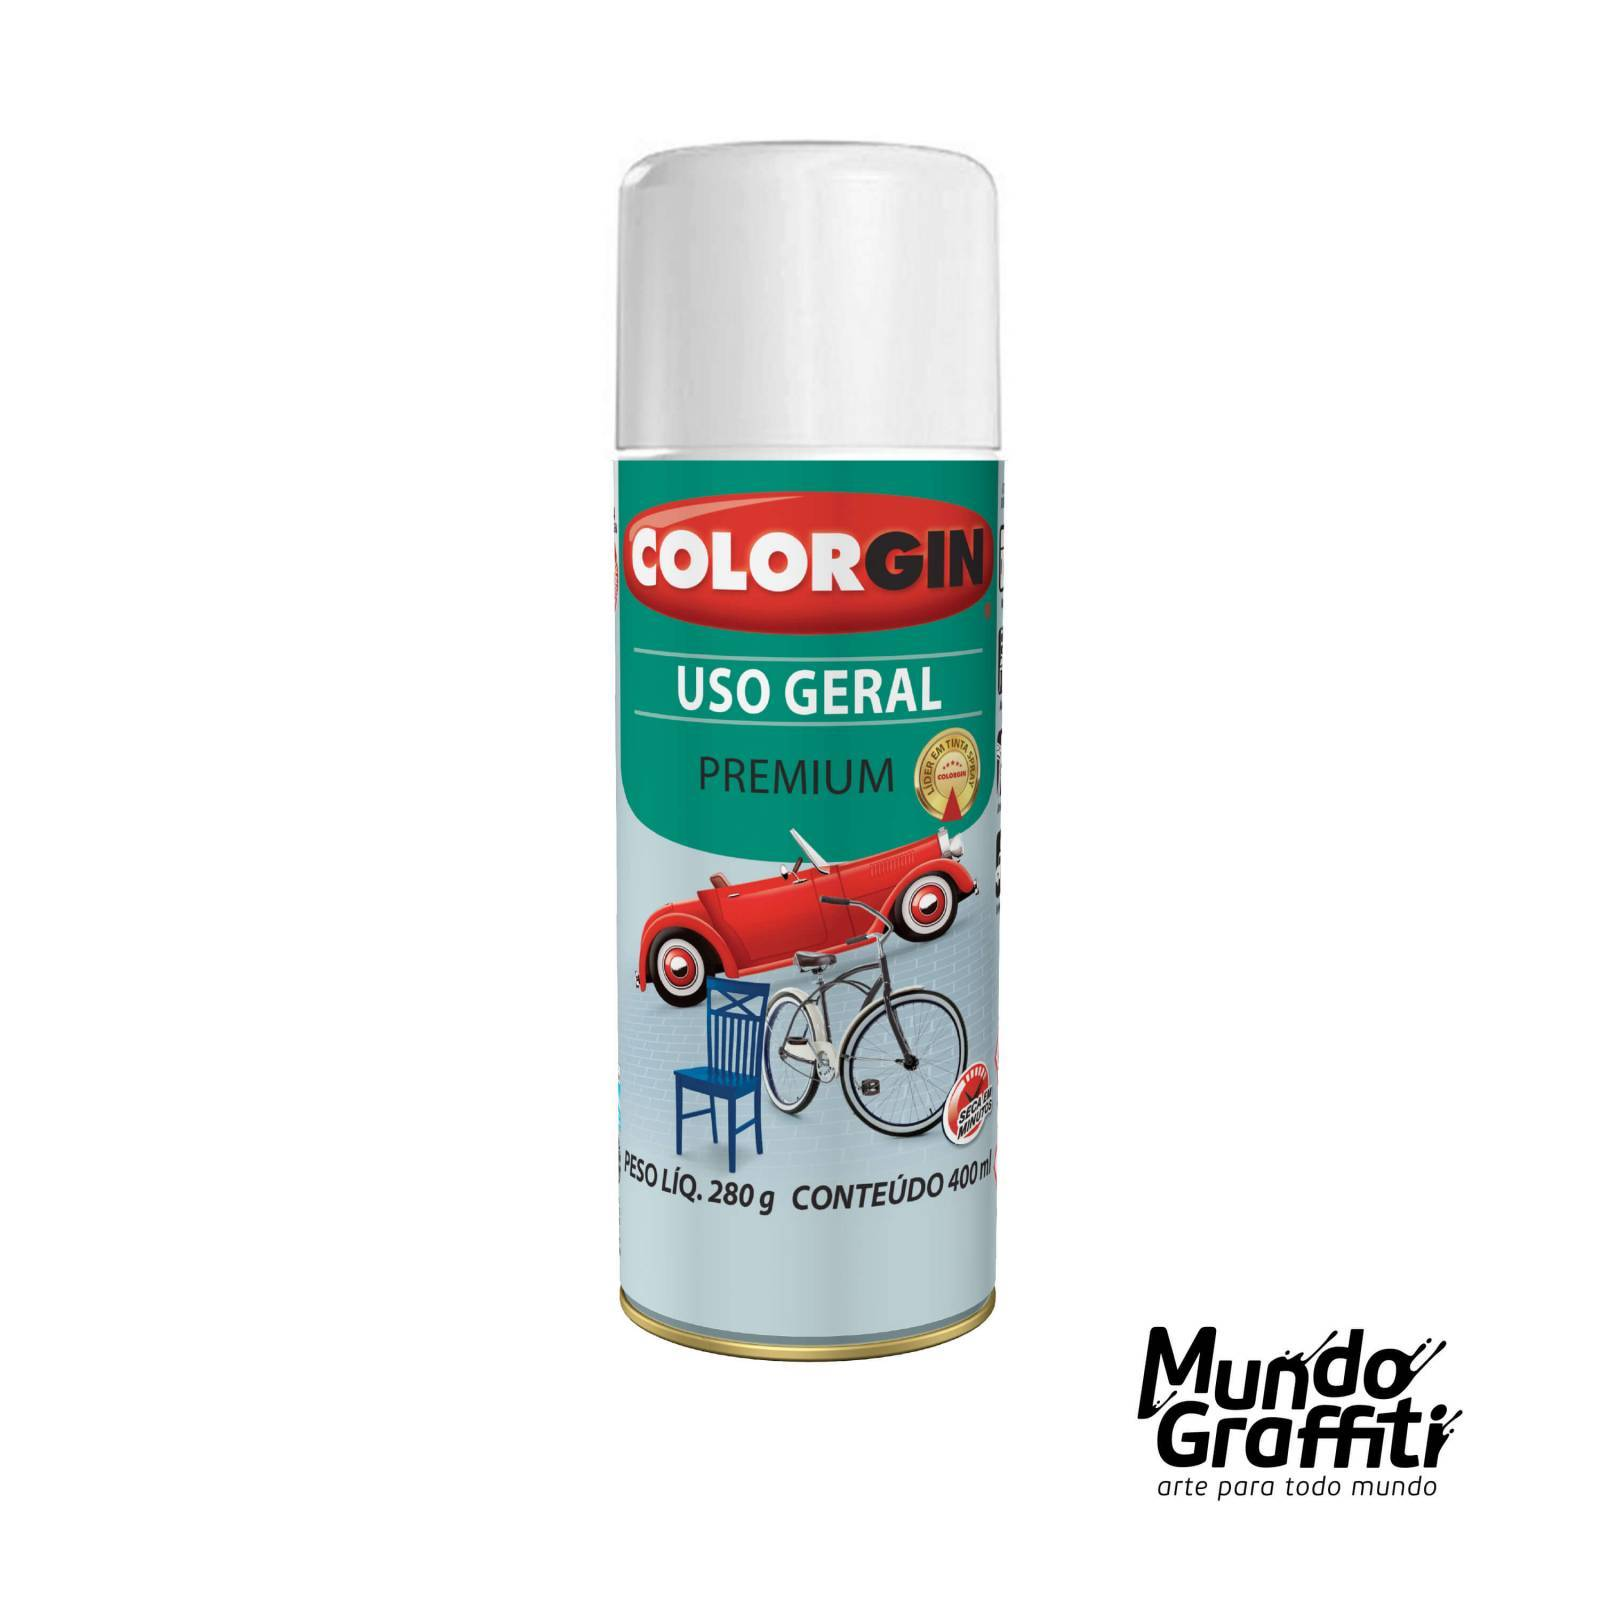 Tinta Spray Colorgin Uso Geral 55201 Branco Brastemp 400ml - Mundo Graffiti